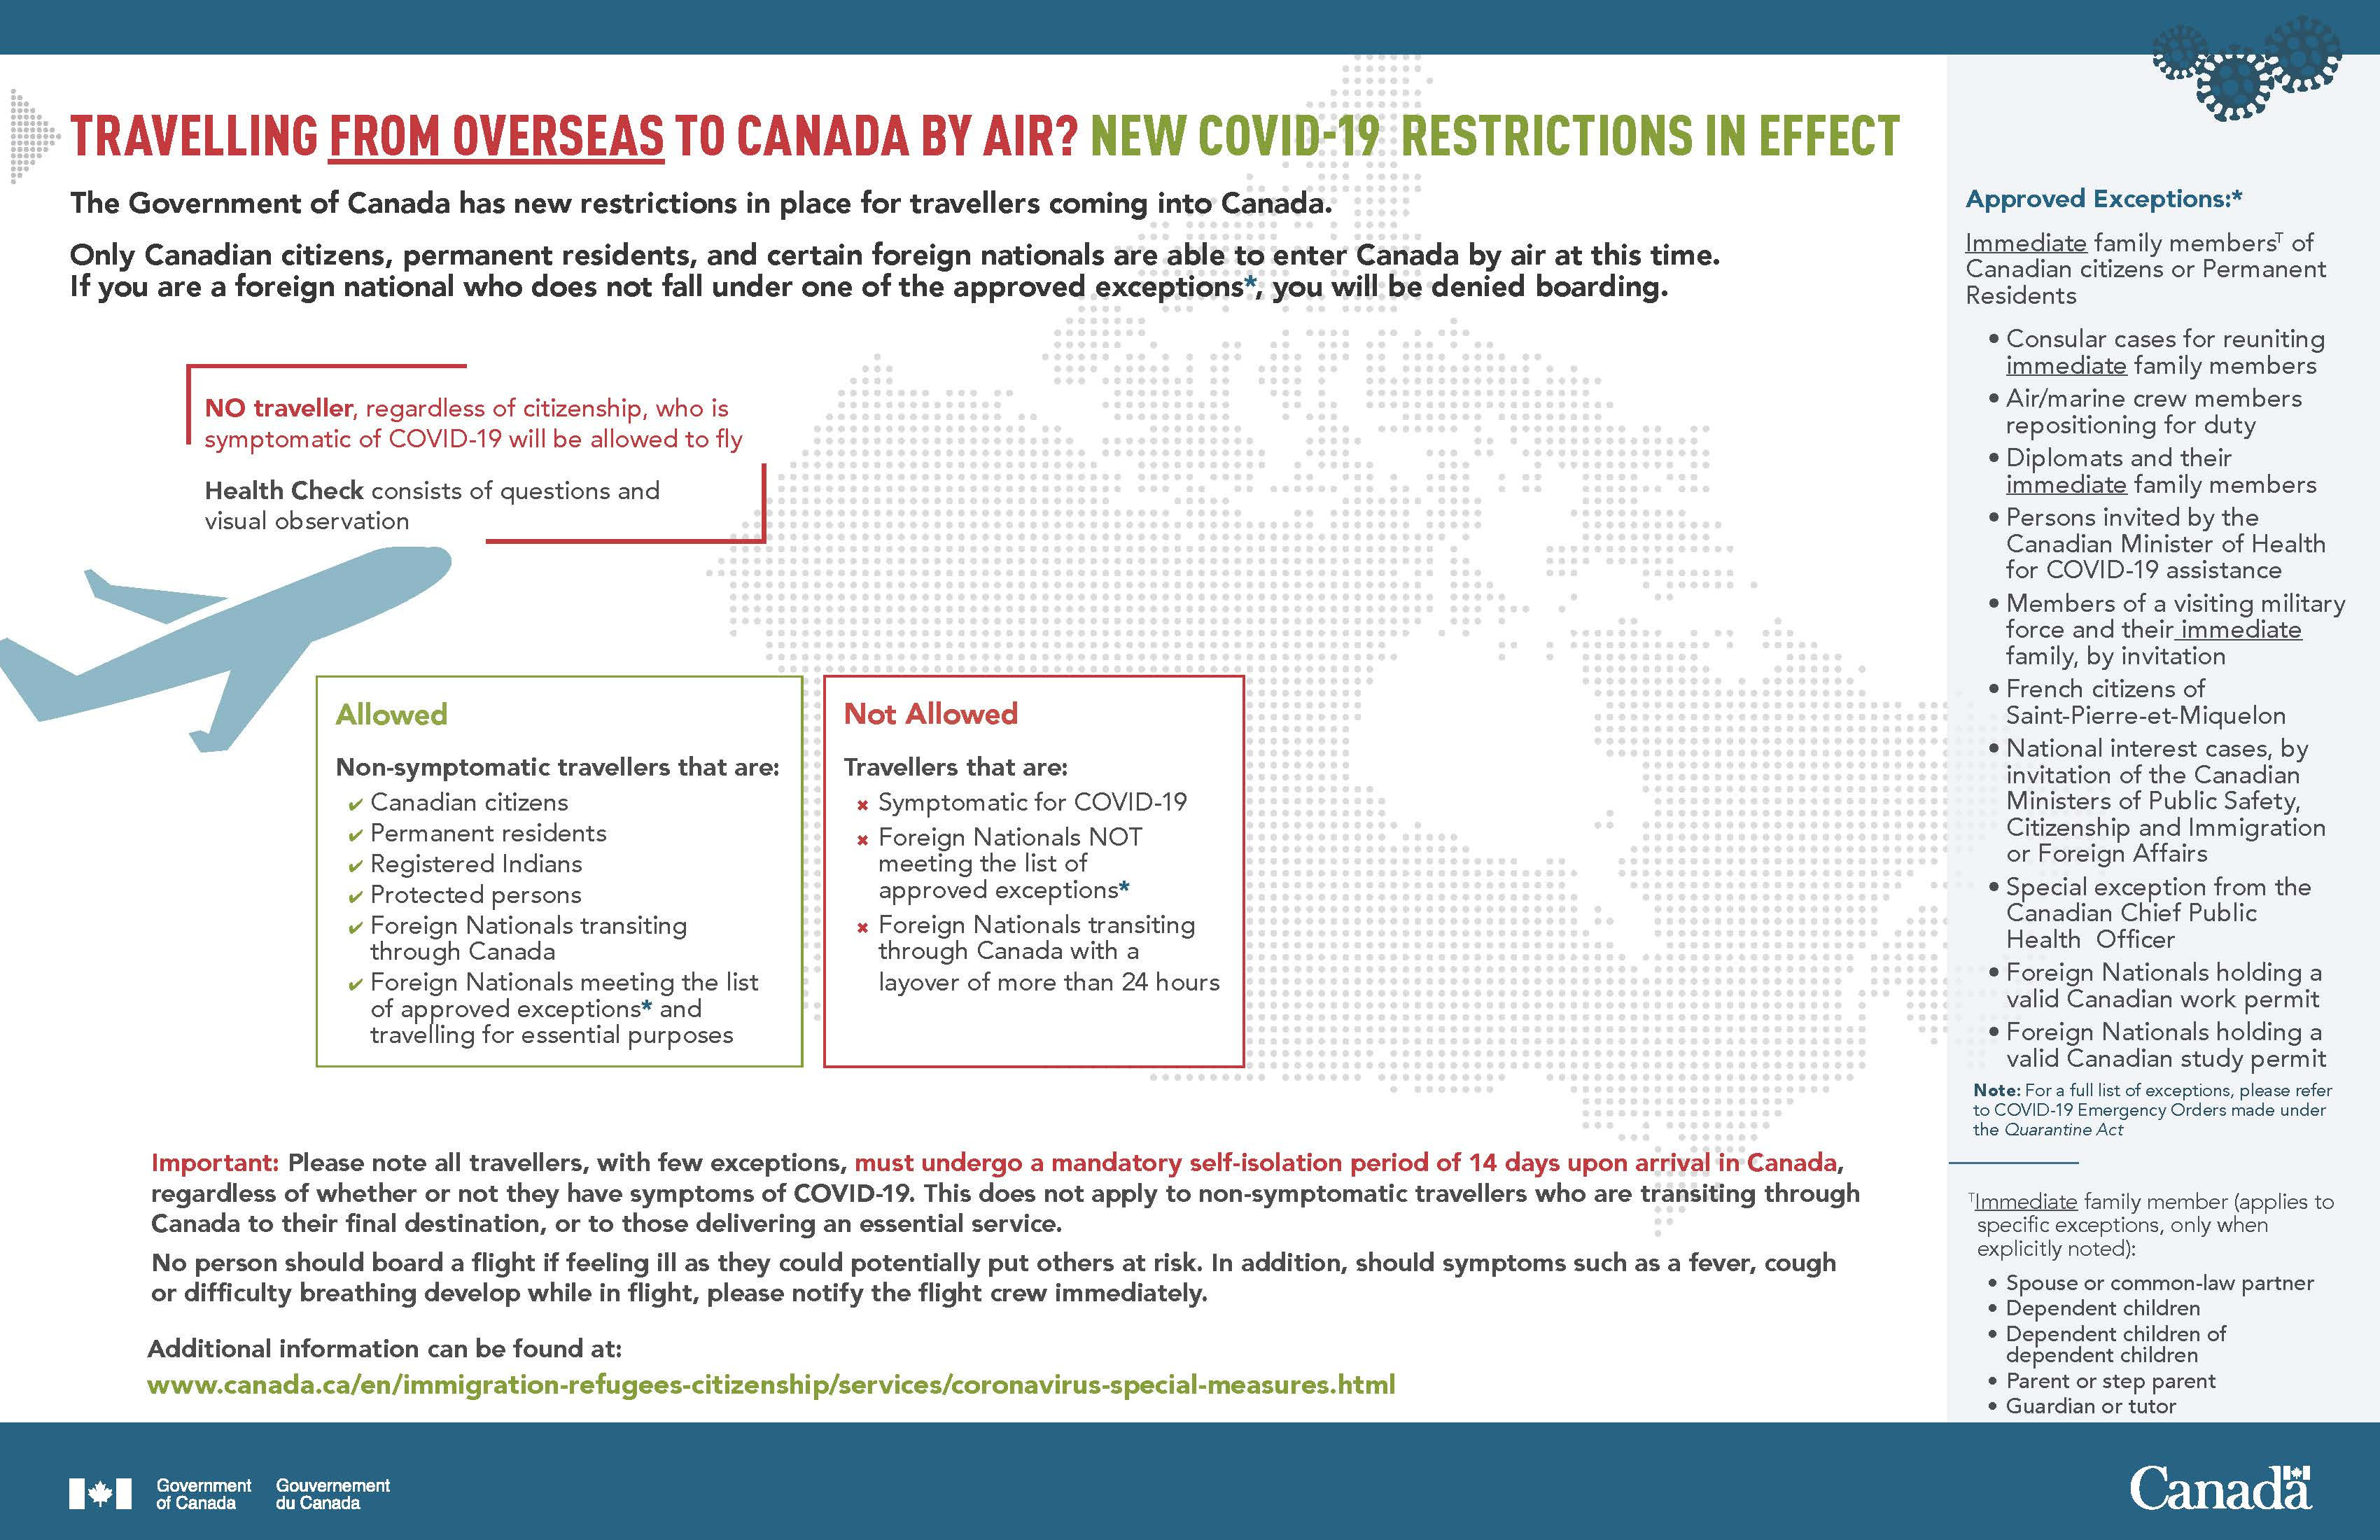 TRAVELLING FROM OVERSEAS TO CANADA BY AIR? NEW COVID-19 RESTRICTIONS IN EFFECT